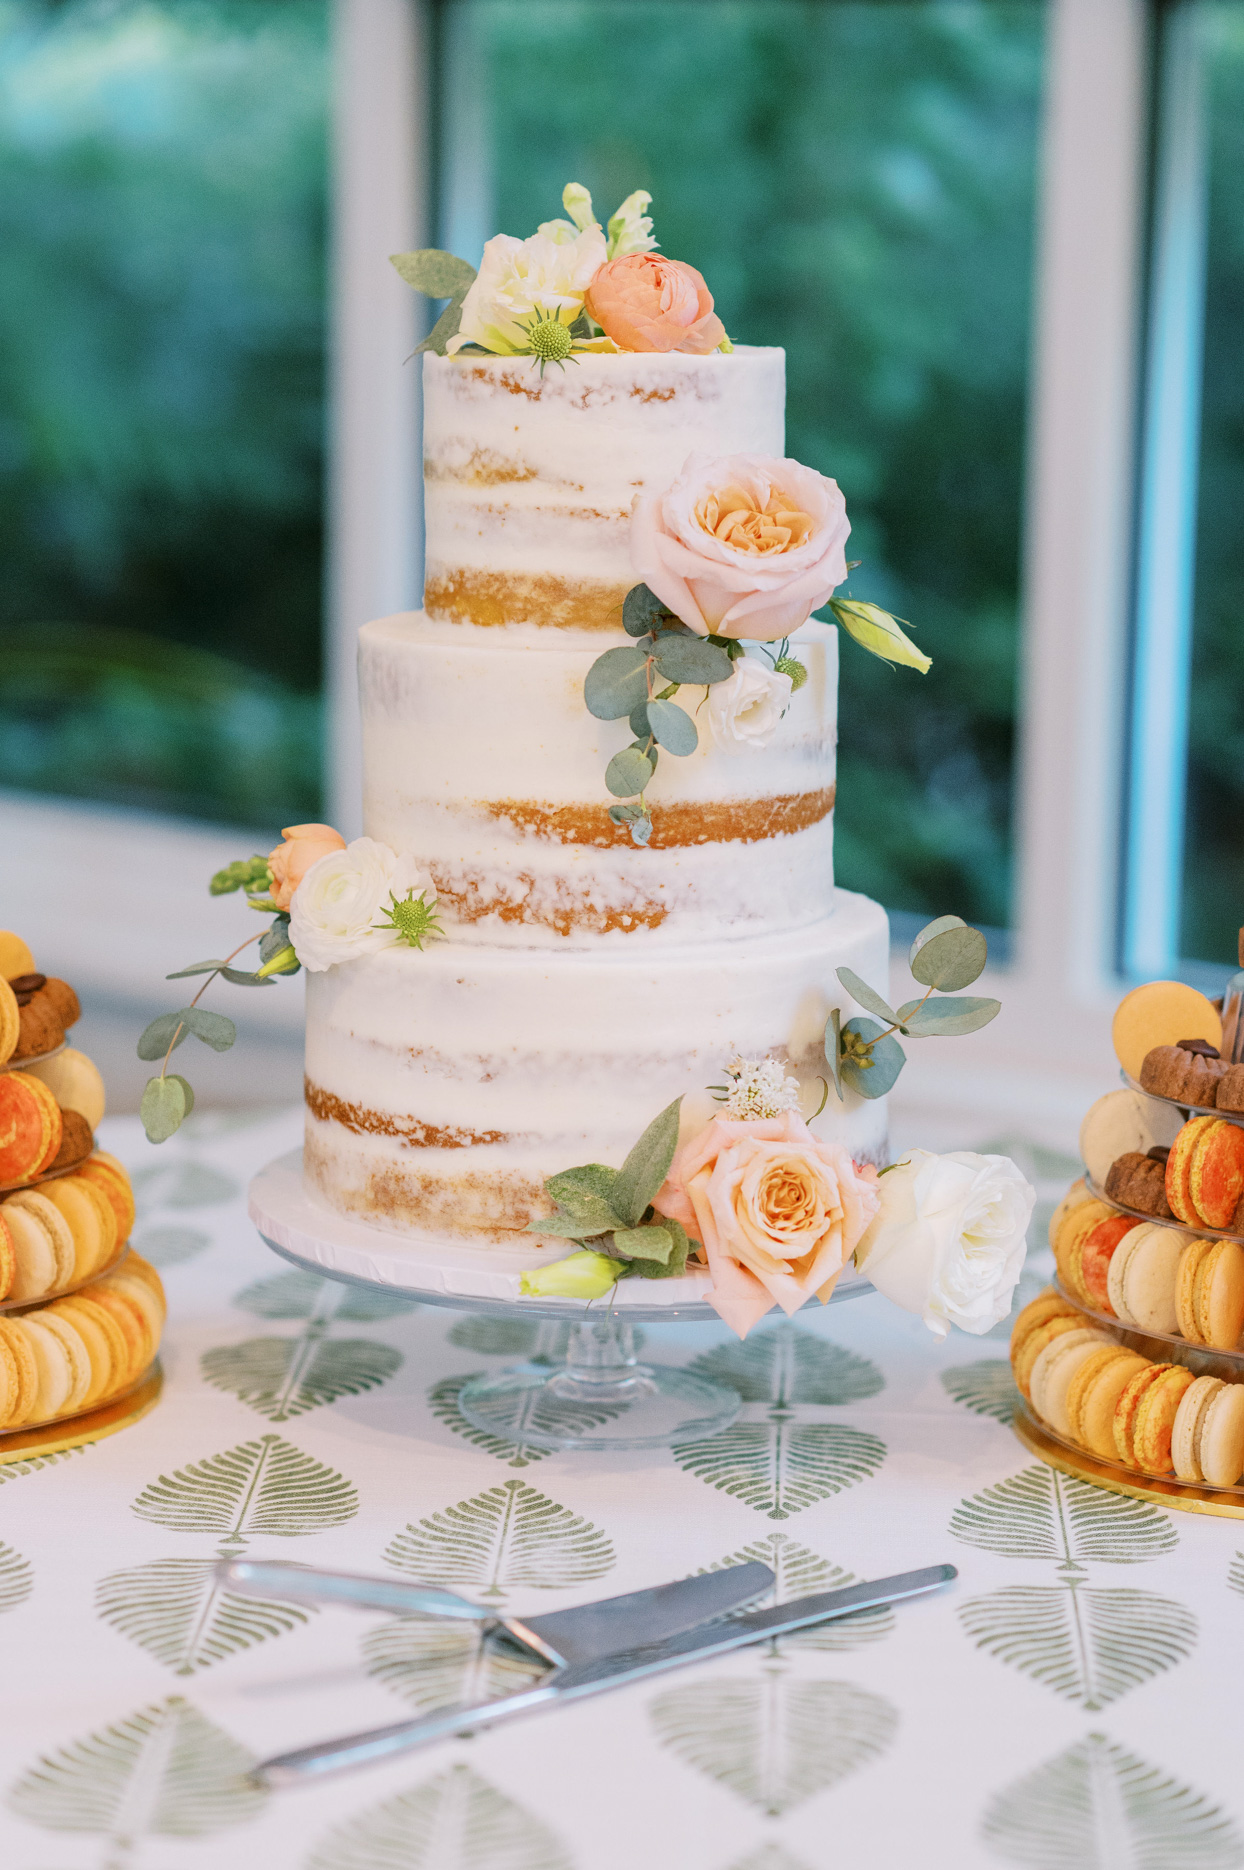 three tiered white frosted wedding cake with orange floral decor